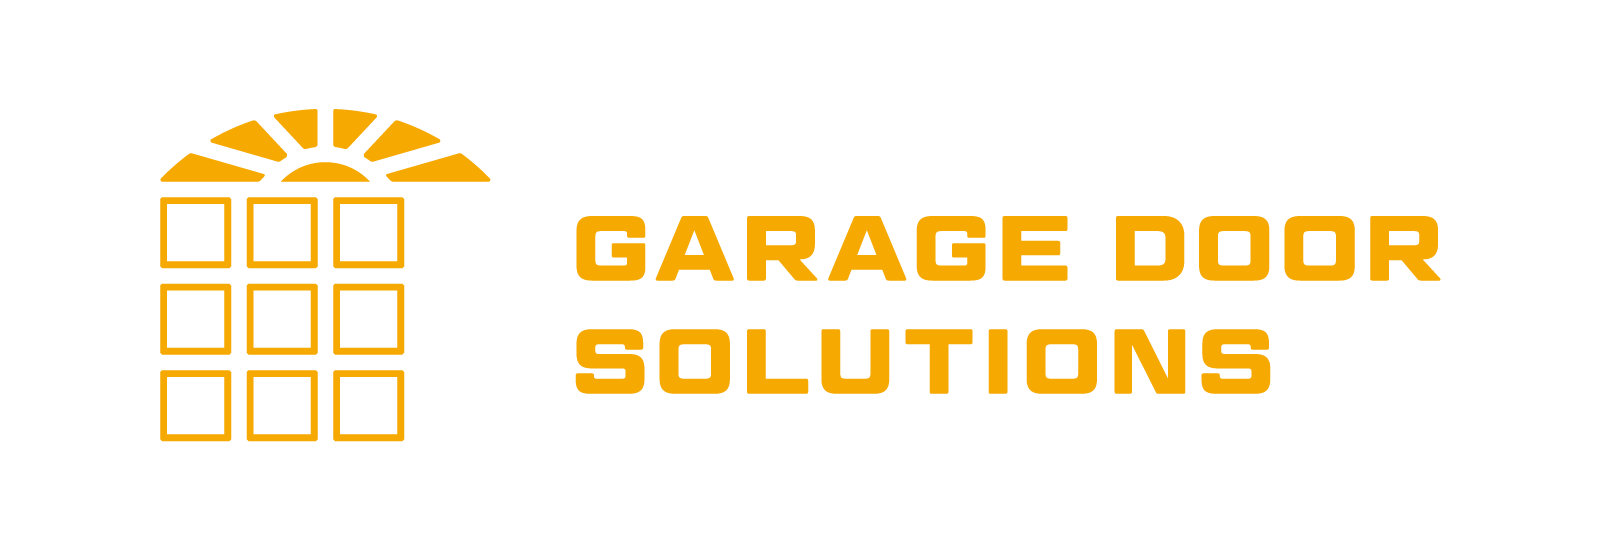 Garage Door Solutions ltd